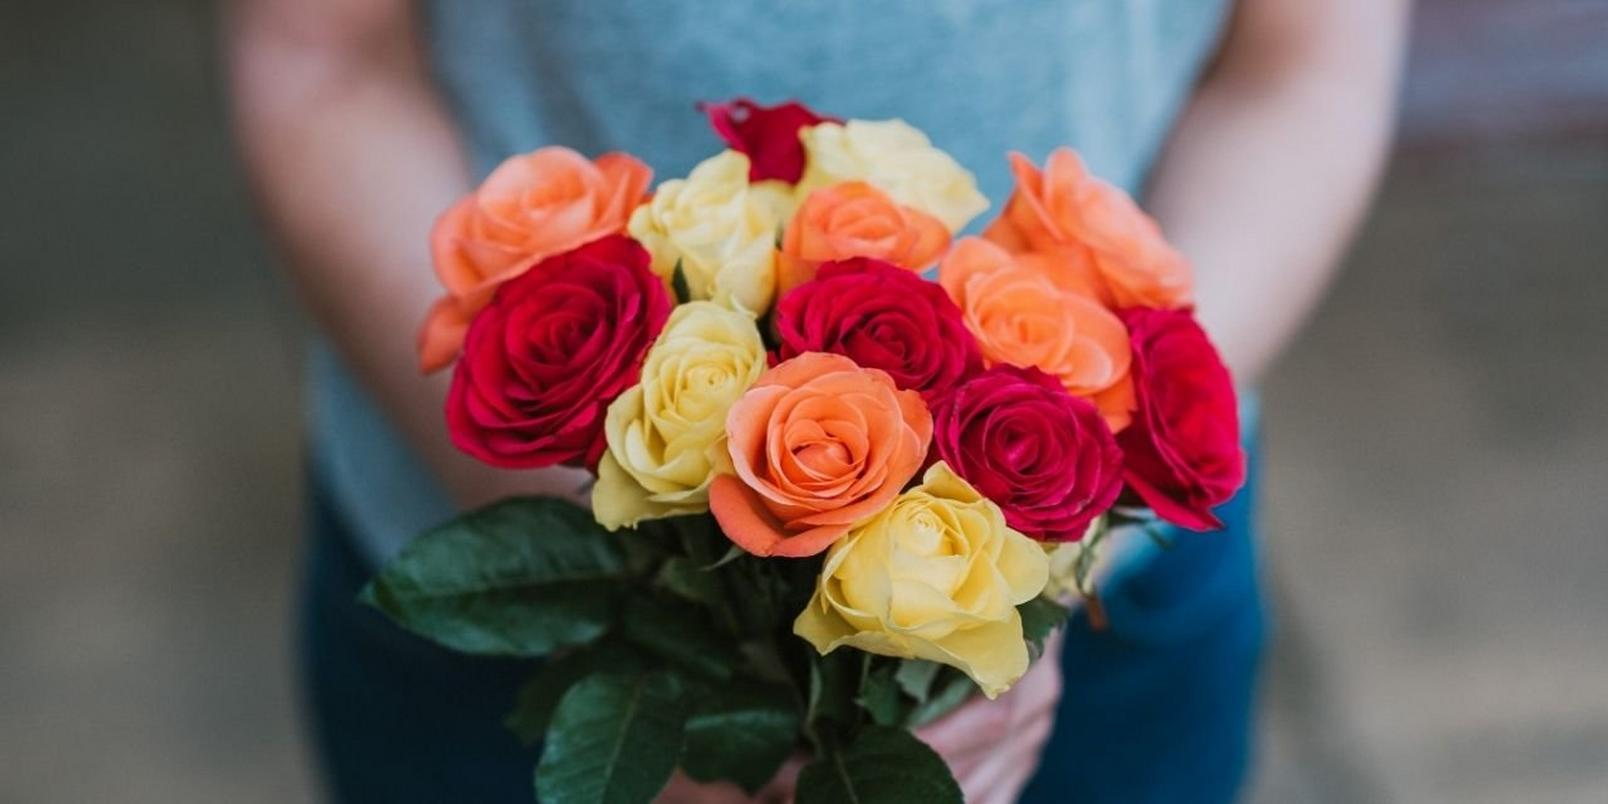 Roses-bunch